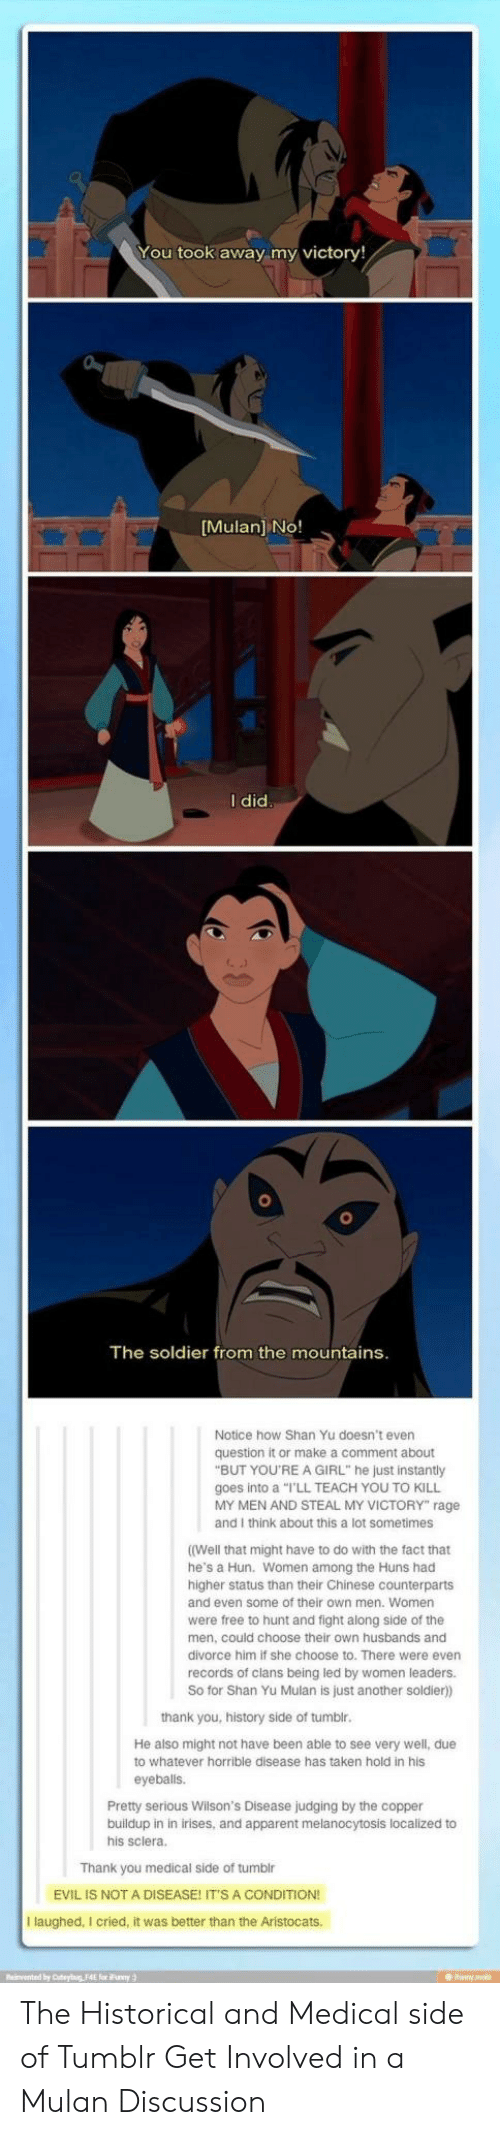 """funy: You took away my victory!  Mulan] NO!  I did  The soldier from the mountains  Notice how Shan Yu doesn't even  question it or make a comment about  """"BUT YOU'RE A GIRL"""" he just instantly  goes into a """"I'LL TEACH YOU TO KILL  MY MEN AND STEAL MY VICTORY"""" rage  and I think about this a lot sometimes  (Well that might have to do with the fact that  he's a Hun. Women among the Huns had  higher status than their Chinese counterparts  and even some of their own men. Women  were free to hunt and fight along side of the  men, could choose their own husbands and  divorce him if she choose to. There were even  records of clans being led by women leaders.  So for Shan Yu Mulan is just another soldier)  thank you, history side of tumbl  He also might not have been able to see very well, due  to whatever horrible disease has taken hold in his  eyeballs.  Pretty serious Wilson's Disease judging by the copper  buildup in in irises, and apparent melanocytosis localized to  his sclera.  Thank you medical side of tumblr  EVIL IS NOT A DISEASE! IT'S A CONDITION  I laughed, I cried, it was better than the Aristocats.  Reinvented by Coteyig F4E for Funy The Historical and Medical side of Tumblr Get Involved in a Mulan Discussion"""